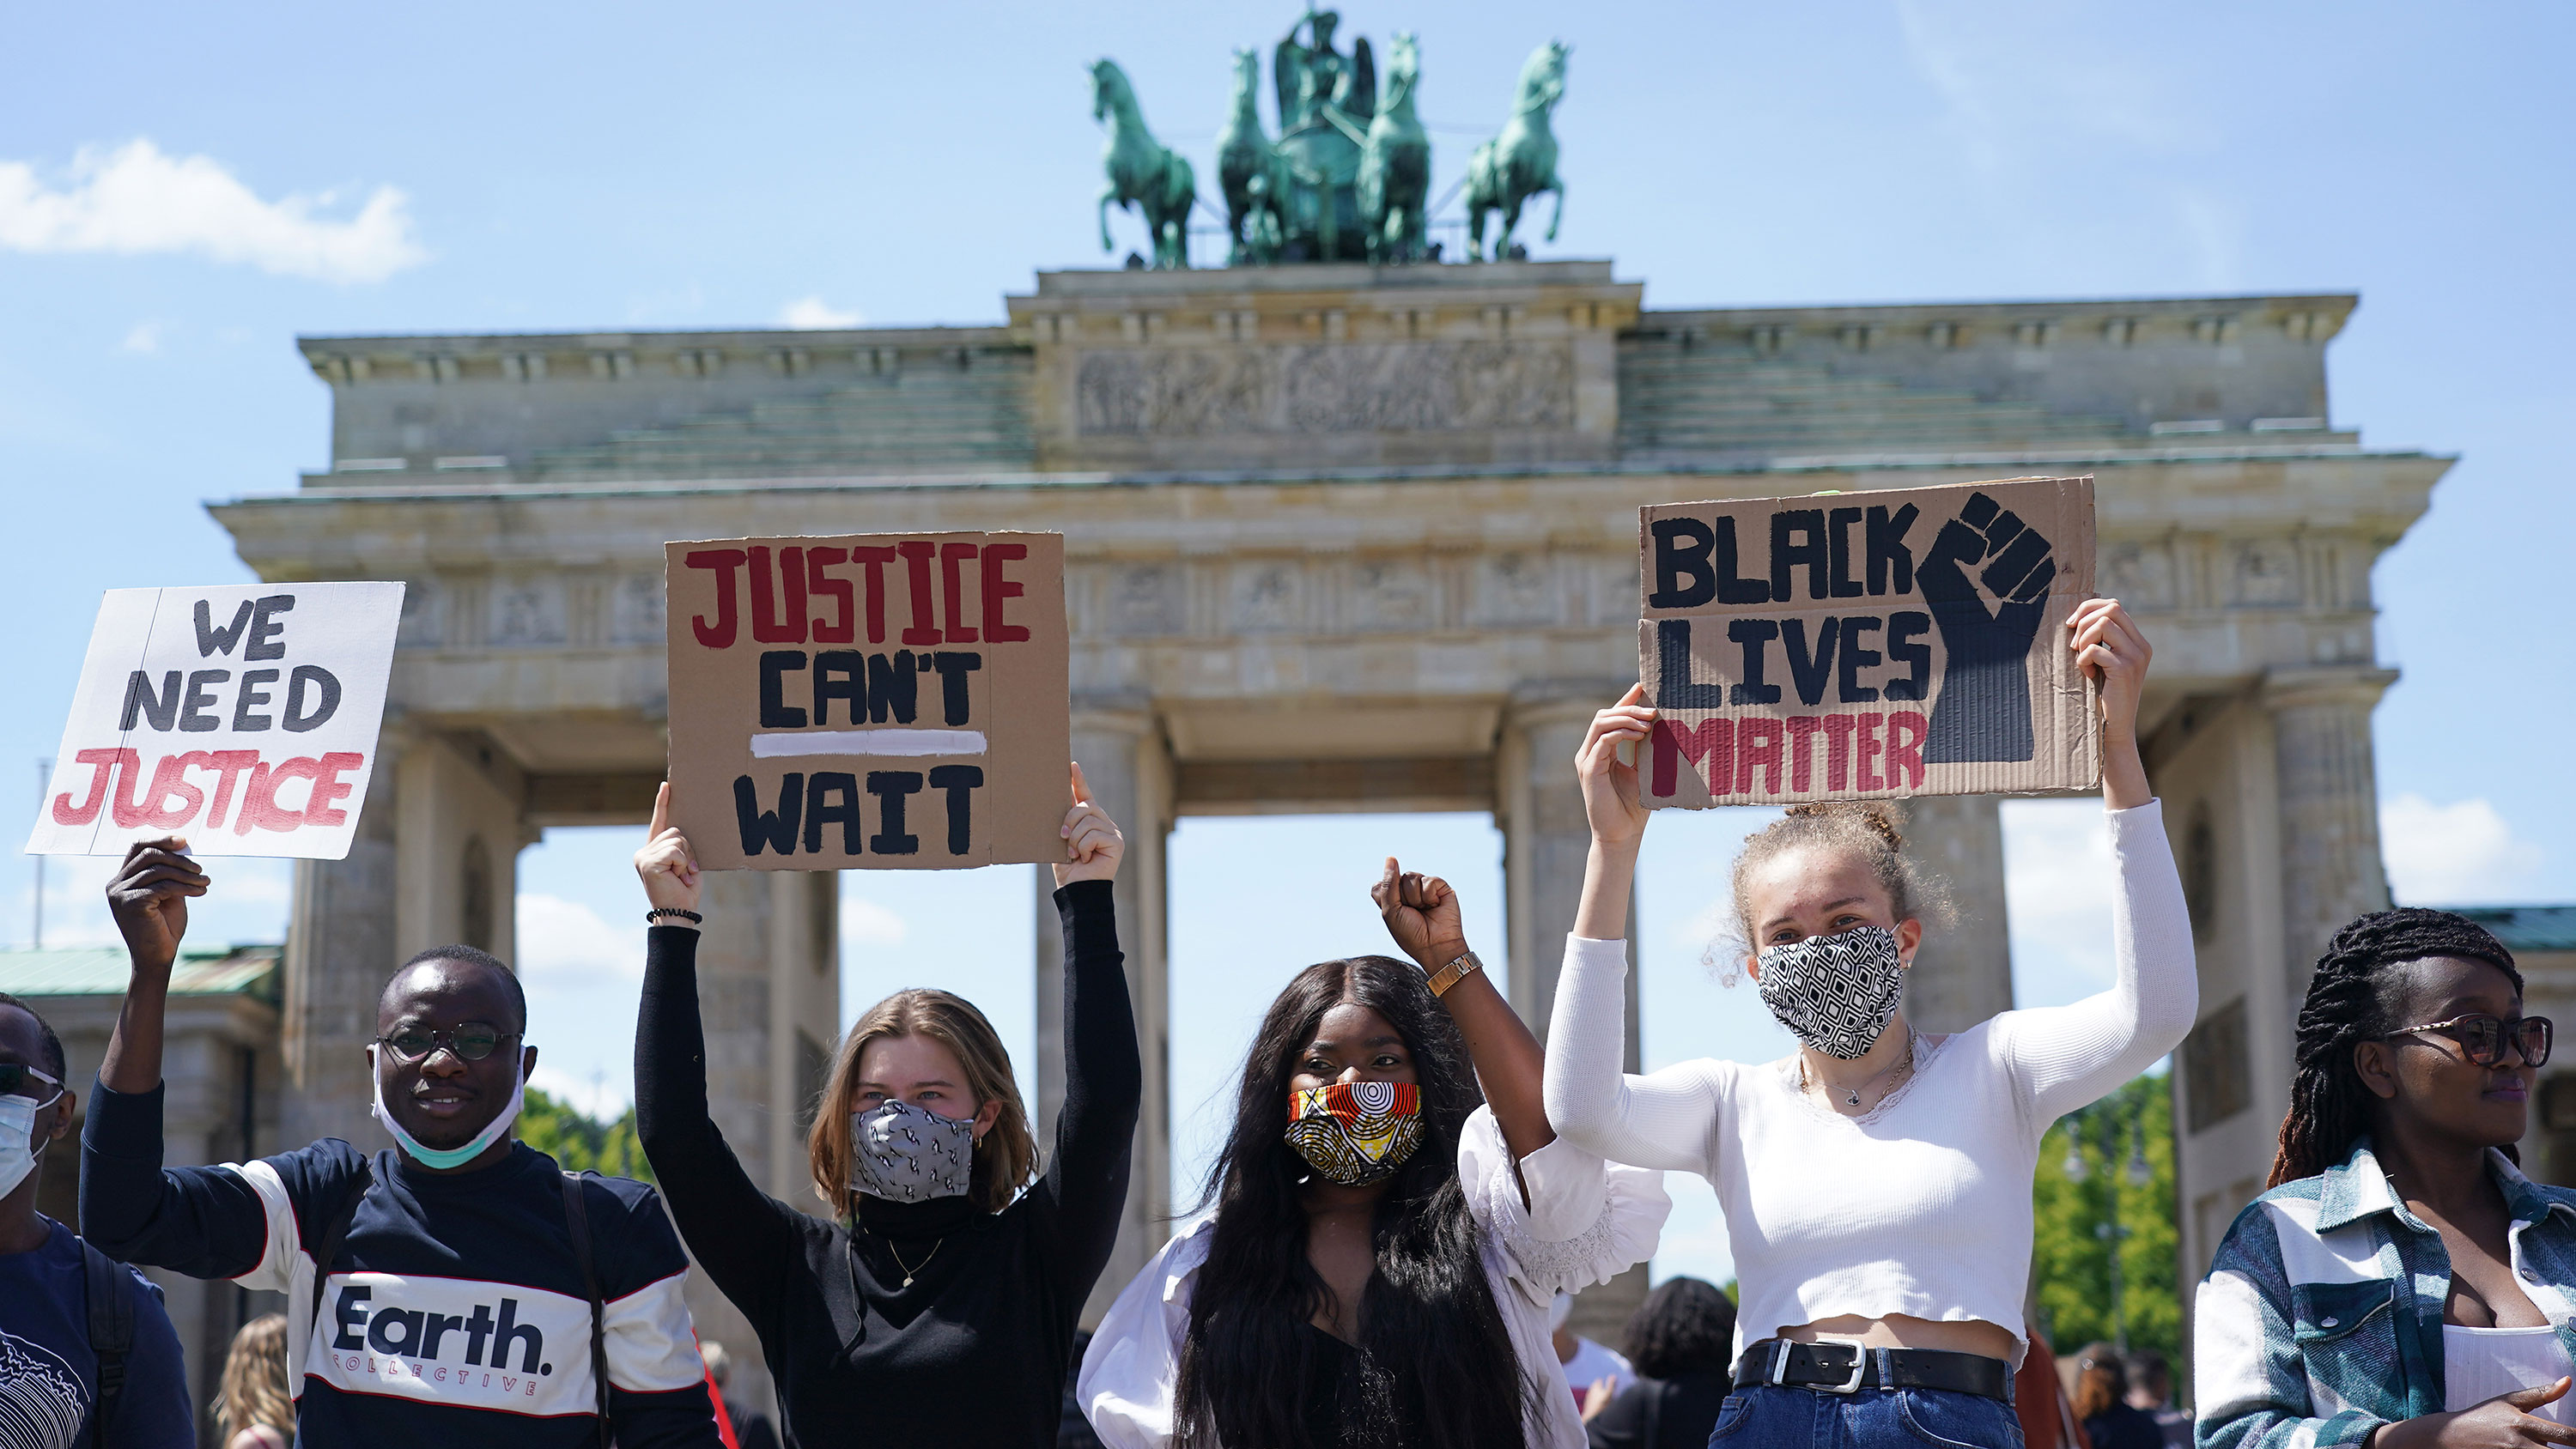 People participate in a protest in front of the Brandenburg Gate in Berlin on May 31.